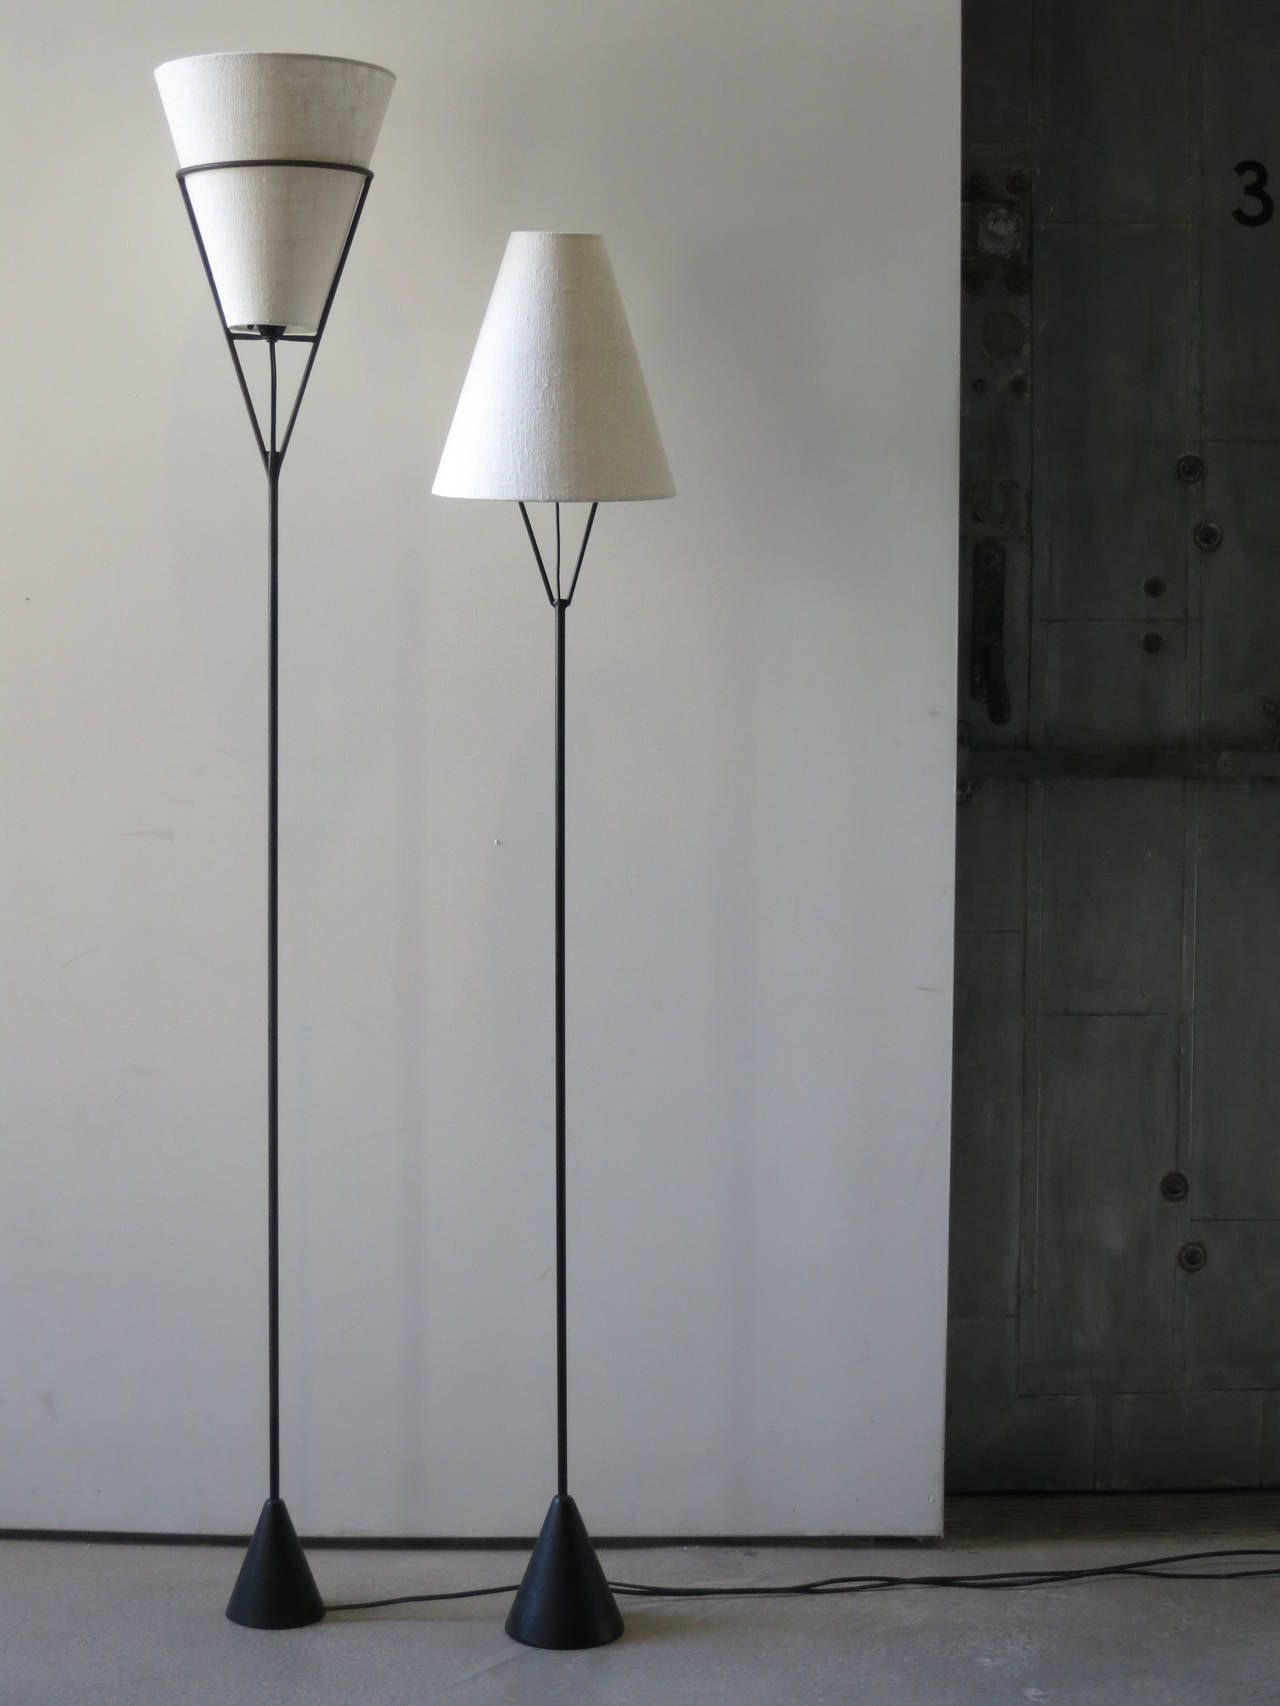 Vintage Carl Aubock Vice Versa Floor Lamp At 1stdibs Vintage Floor Lamp Floor Lamp Makeover Floor Lamp